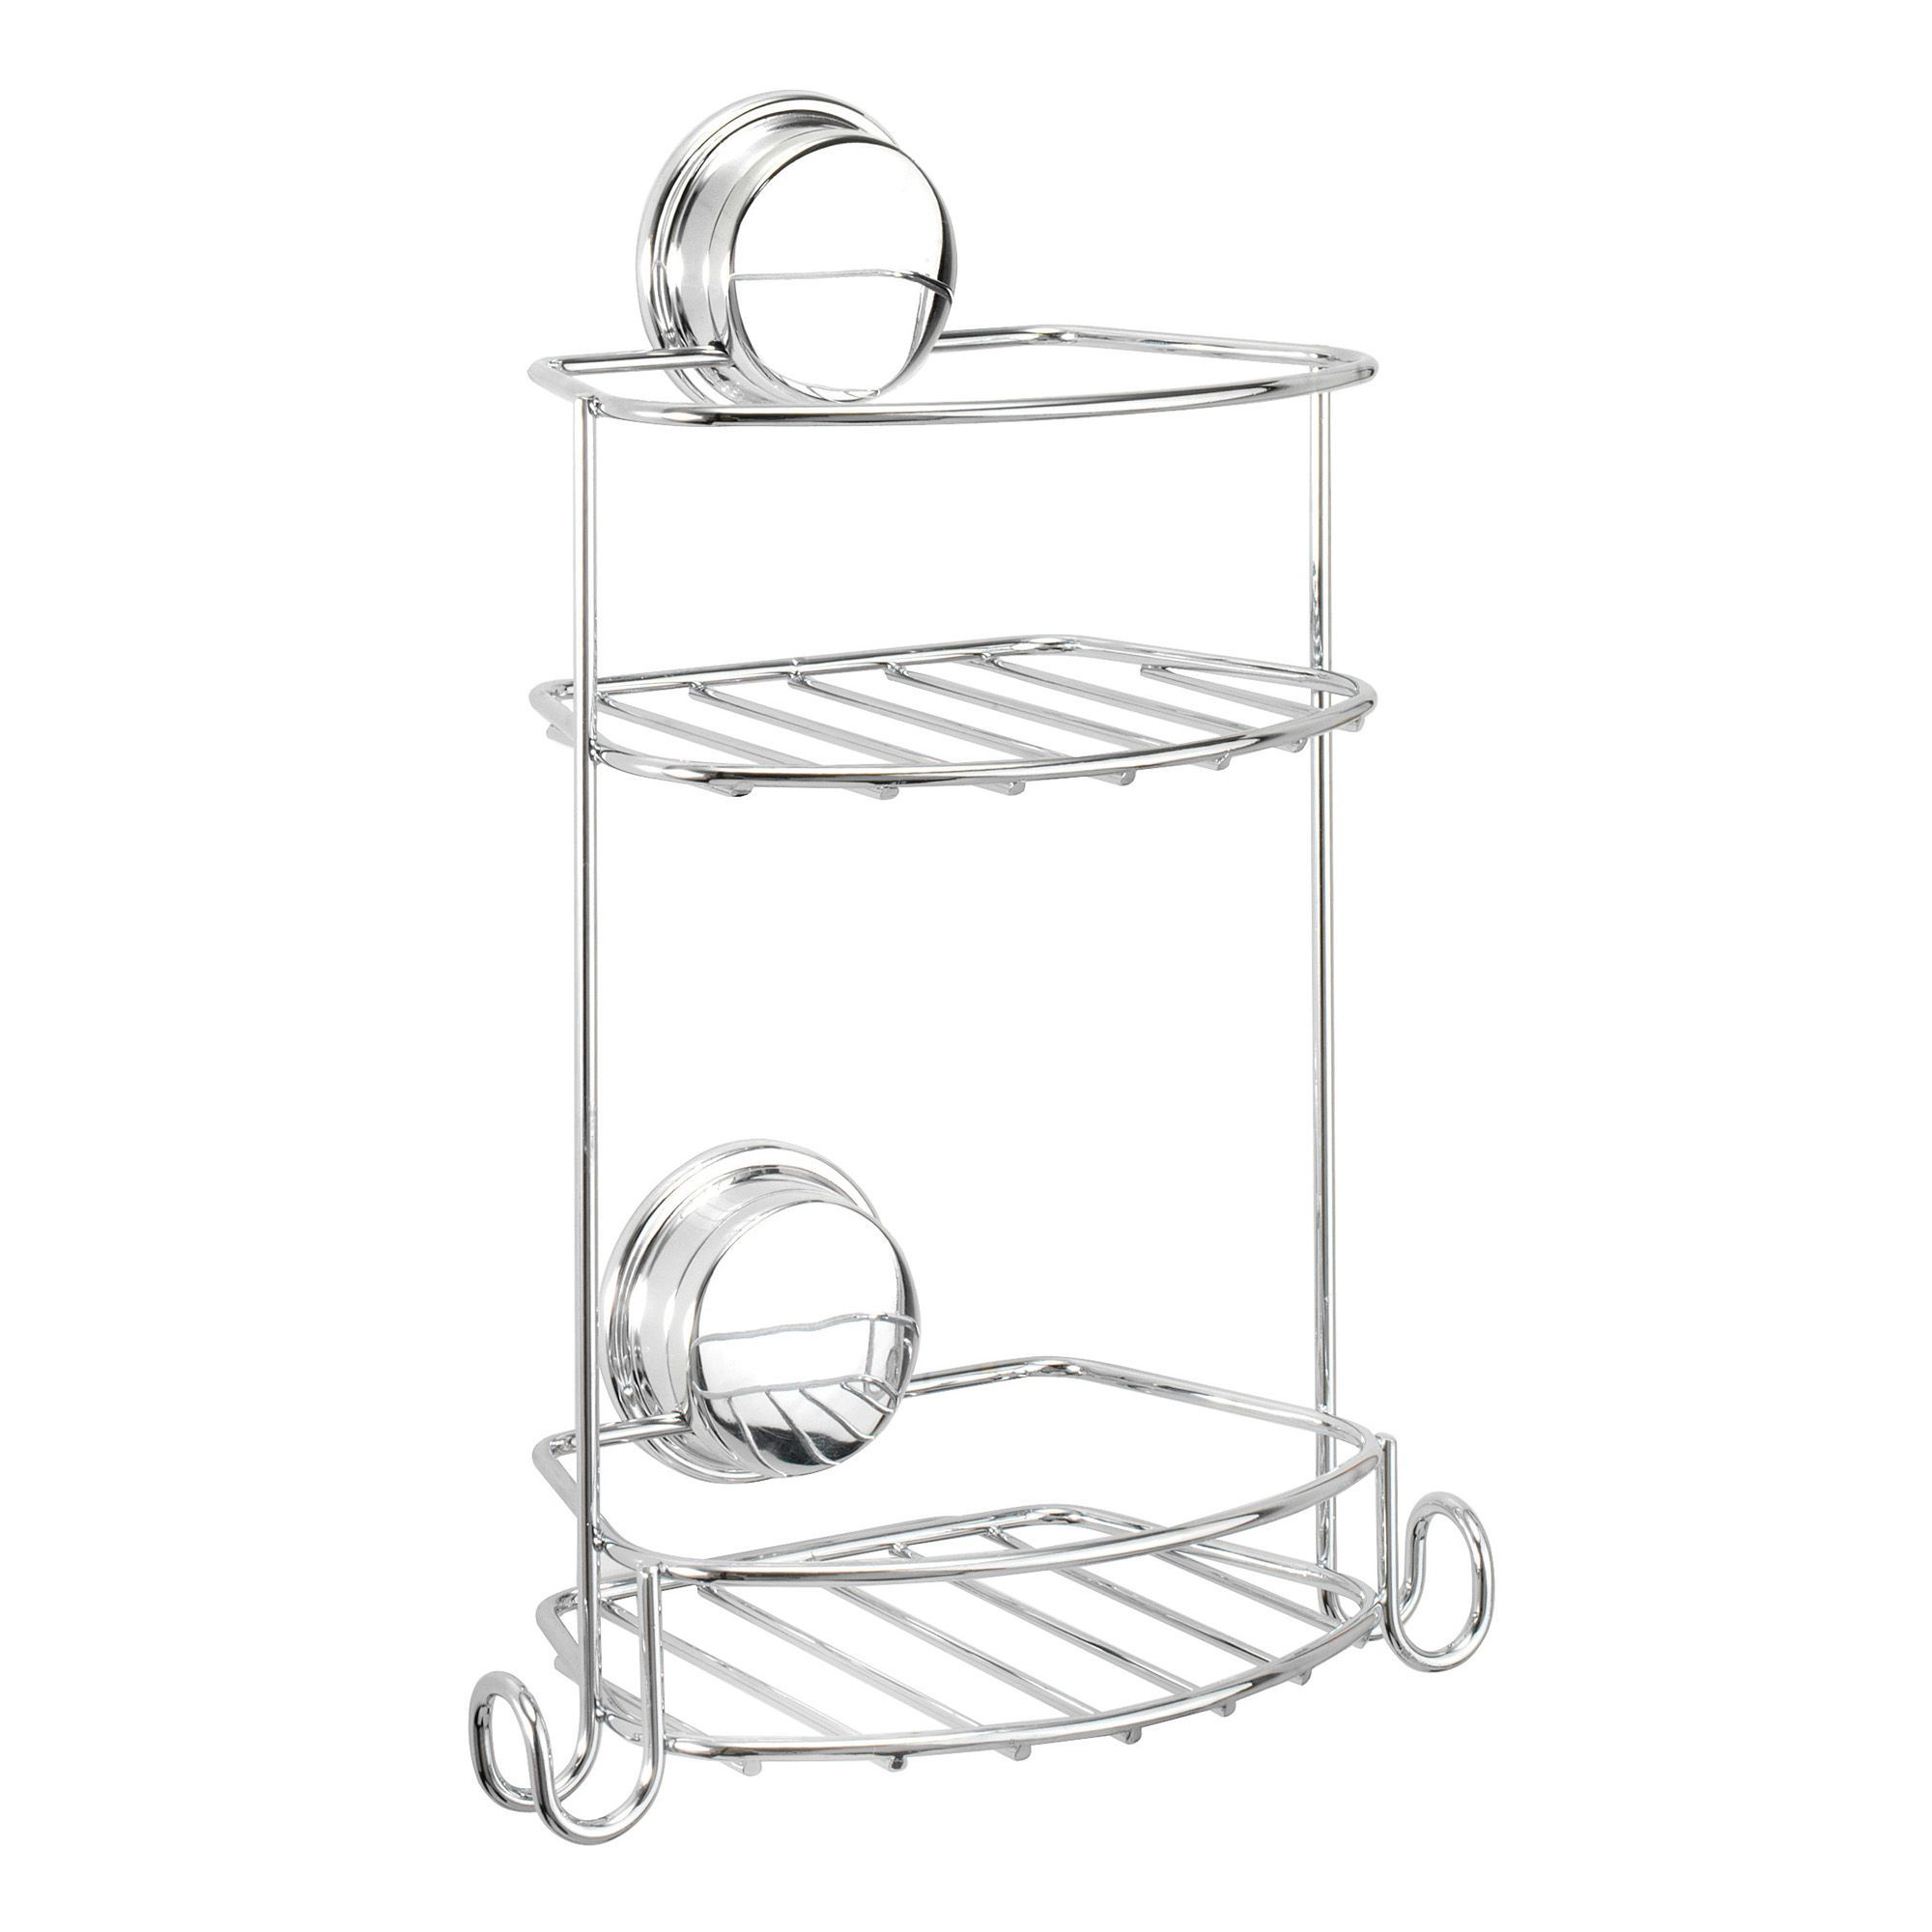 Croydex Stick 'n' Lock Plus Chrome Effect Mild Steel Storage Basket